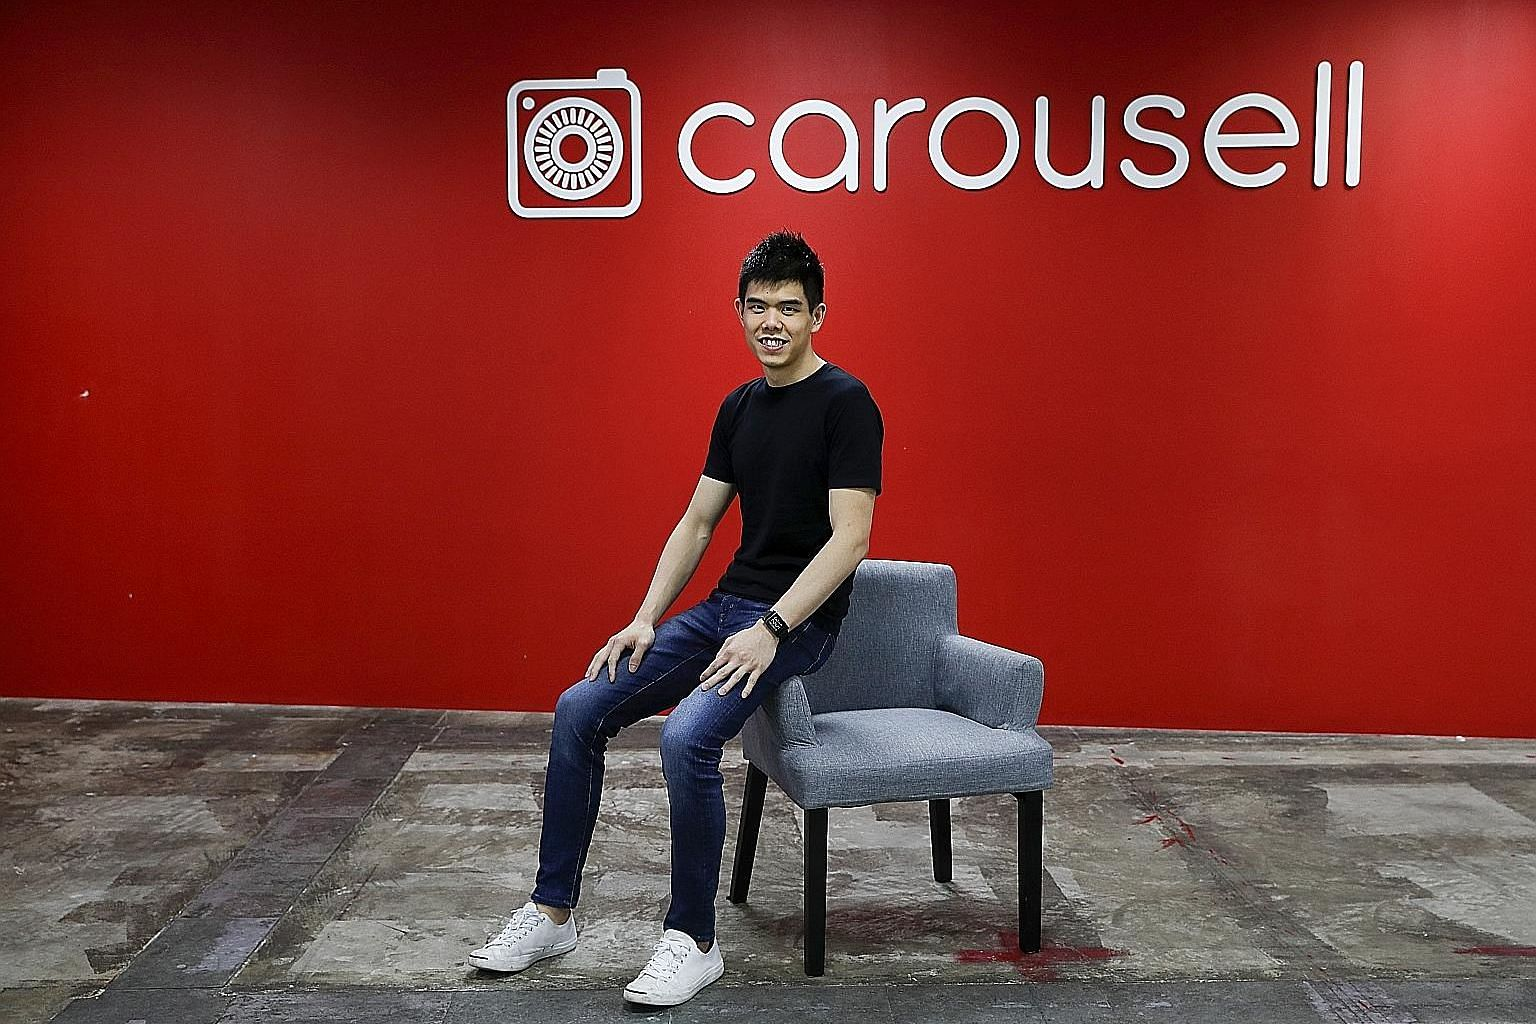 Carousell co-founder and CEO Quek Siu Rui says the US$56 million deal with OLX Group, owned by Internet firm and technology investor Naspers, includes buying online classifieds site OLX Philippines, and will boost Carousell's presence in the region's